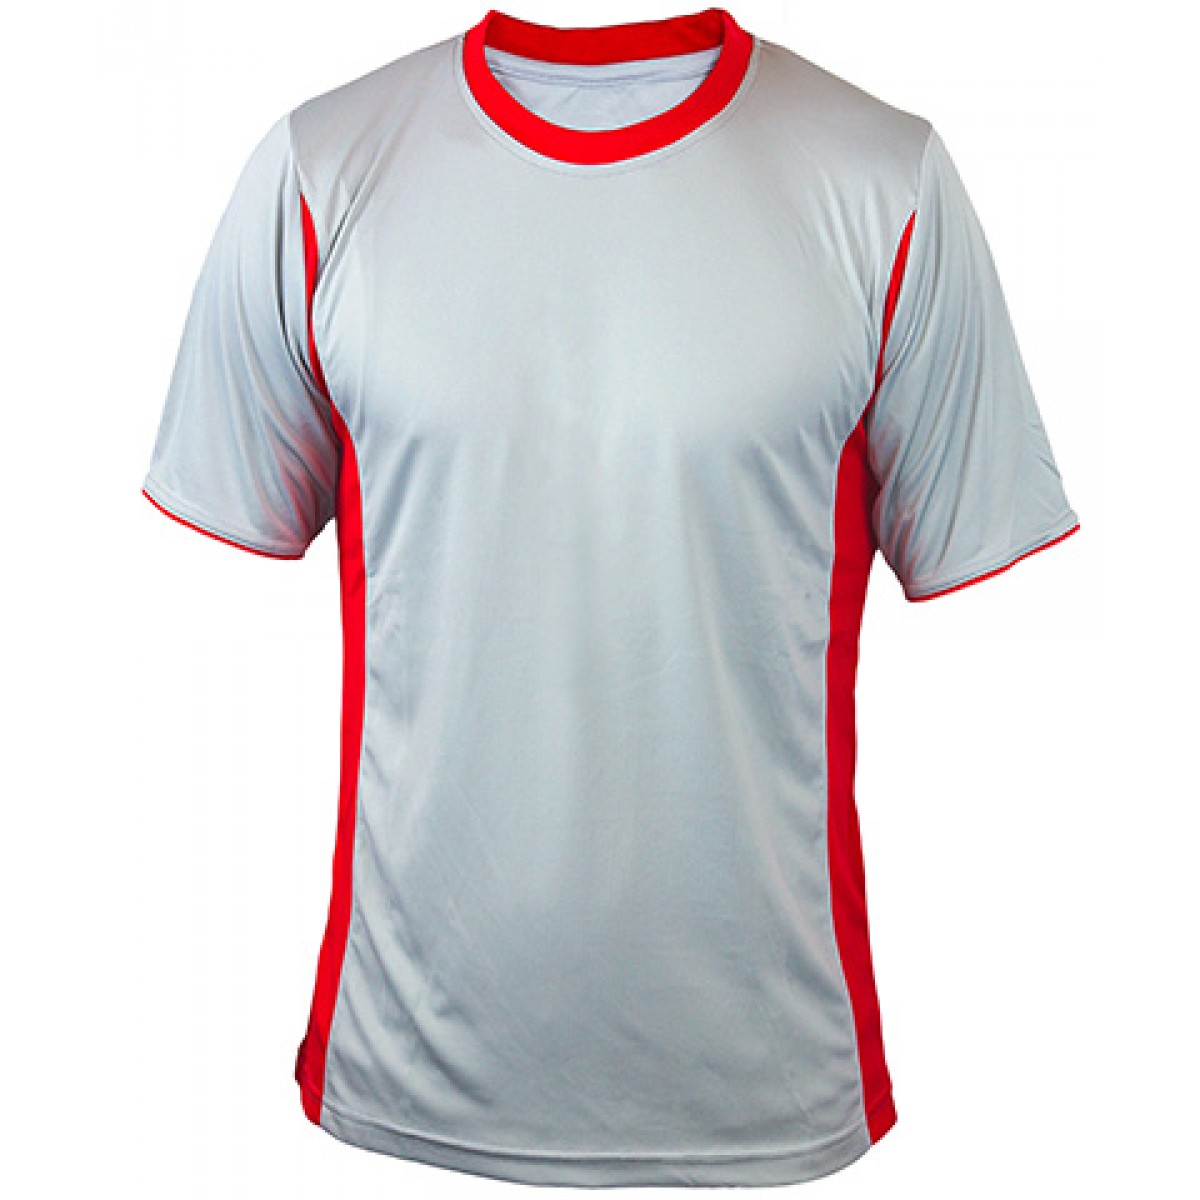 Gray Short Sleeves Performance With Red Side Insert-Gray/Red-S